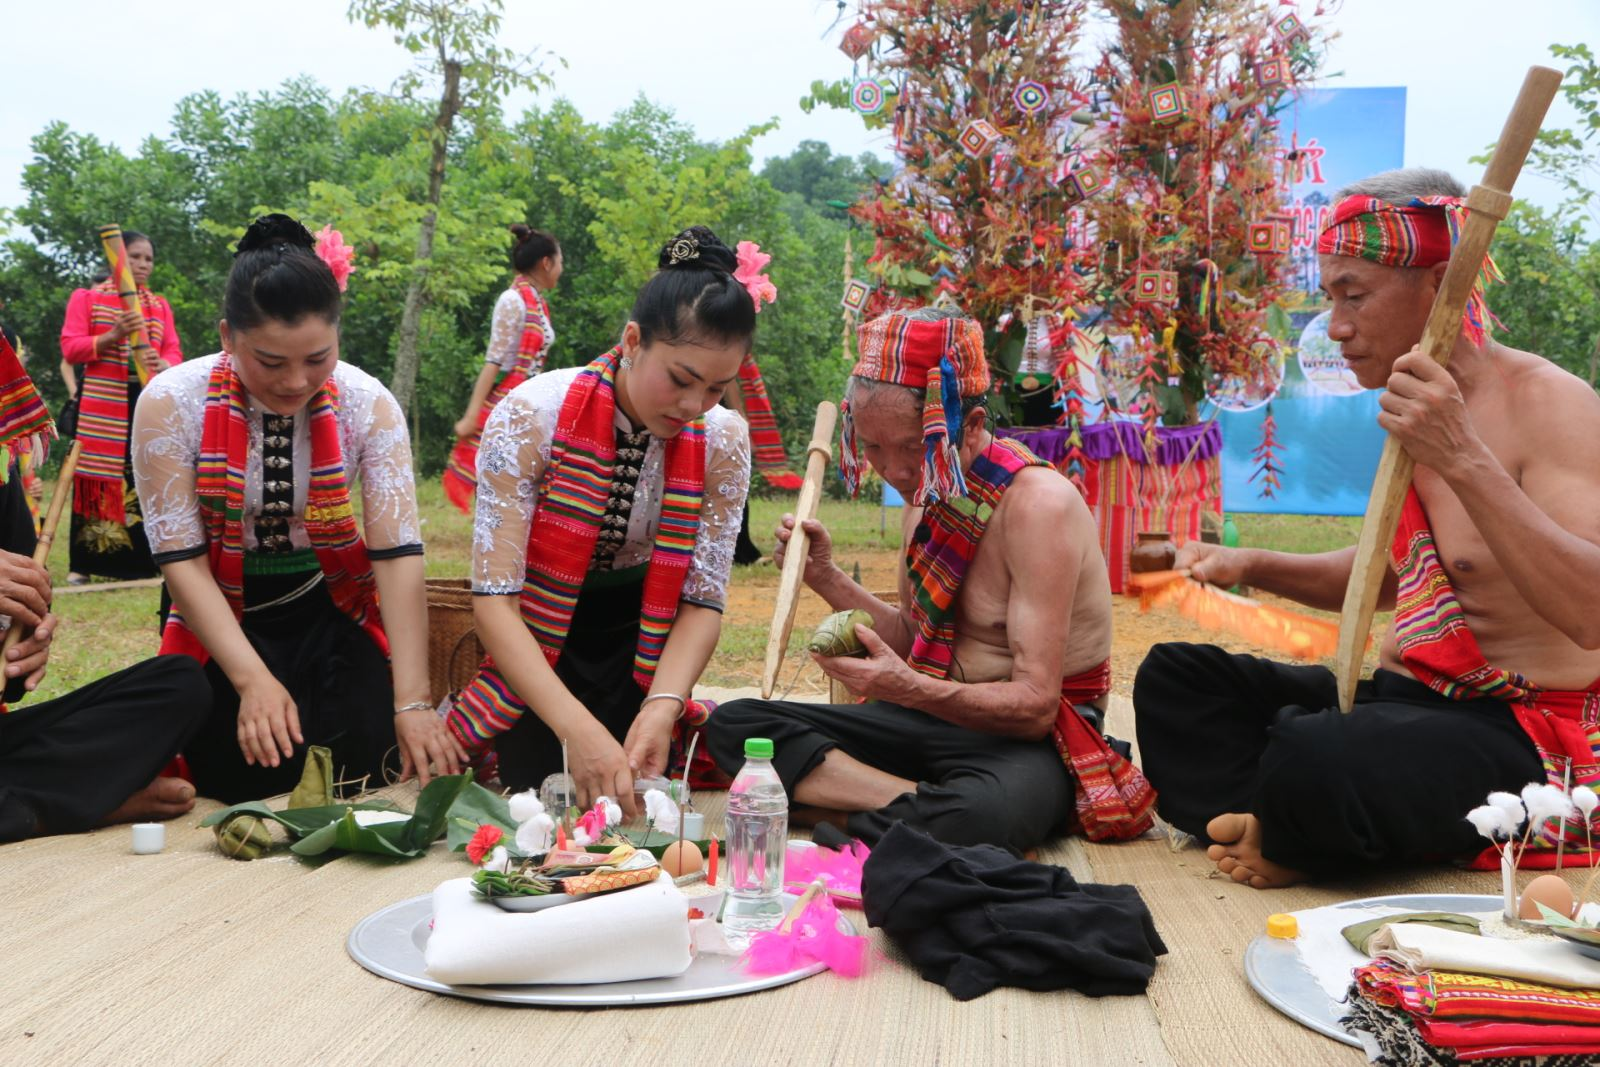 Het Cha Festival of Thai people in Moc Chau